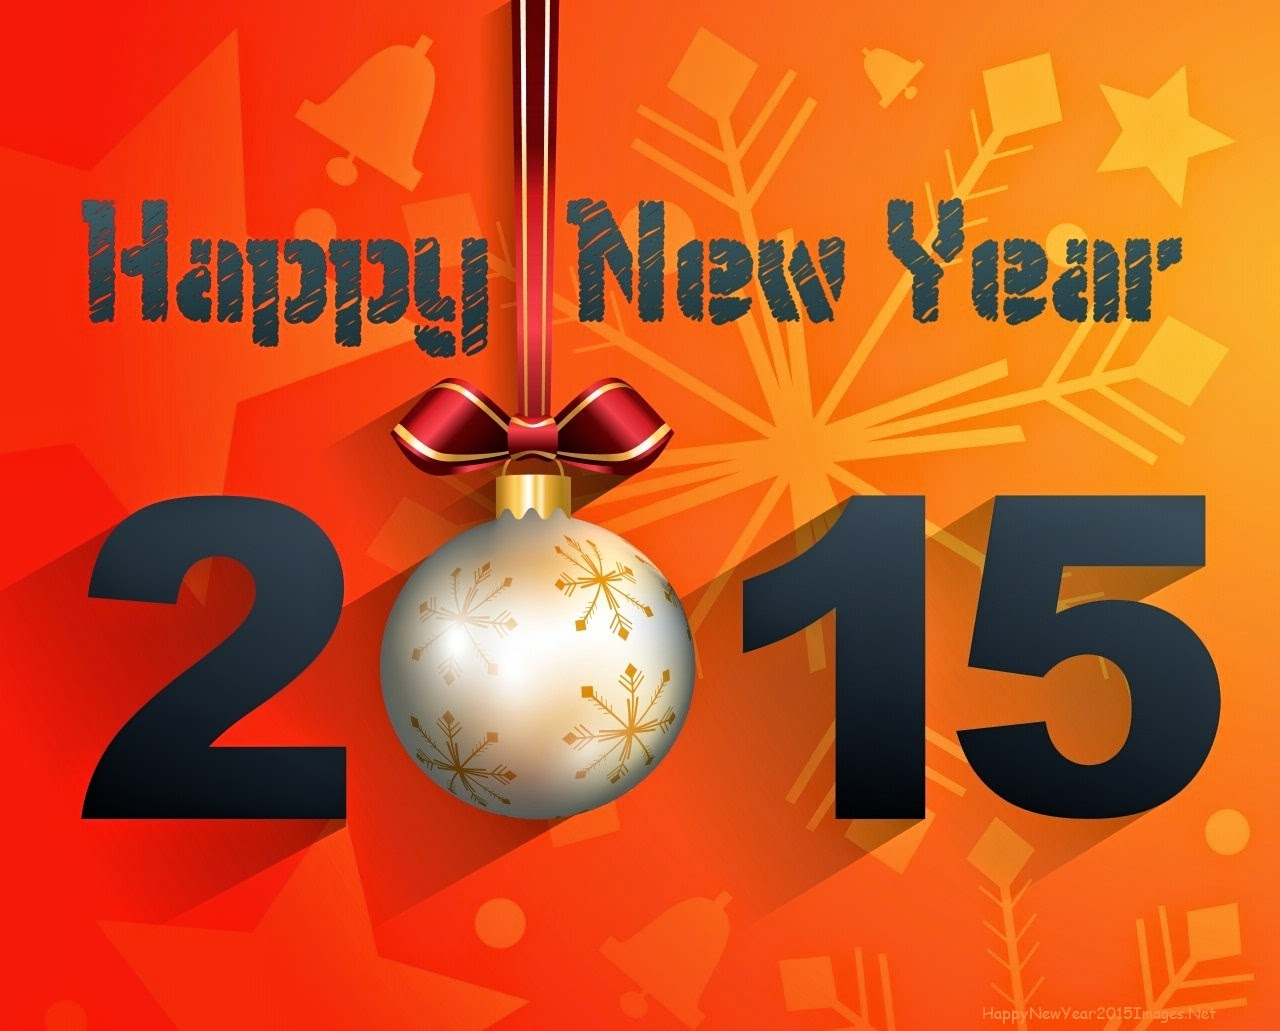 Happy New Year 2015 HD Wallpaper Collection   HD Wallpaper 1280x1031